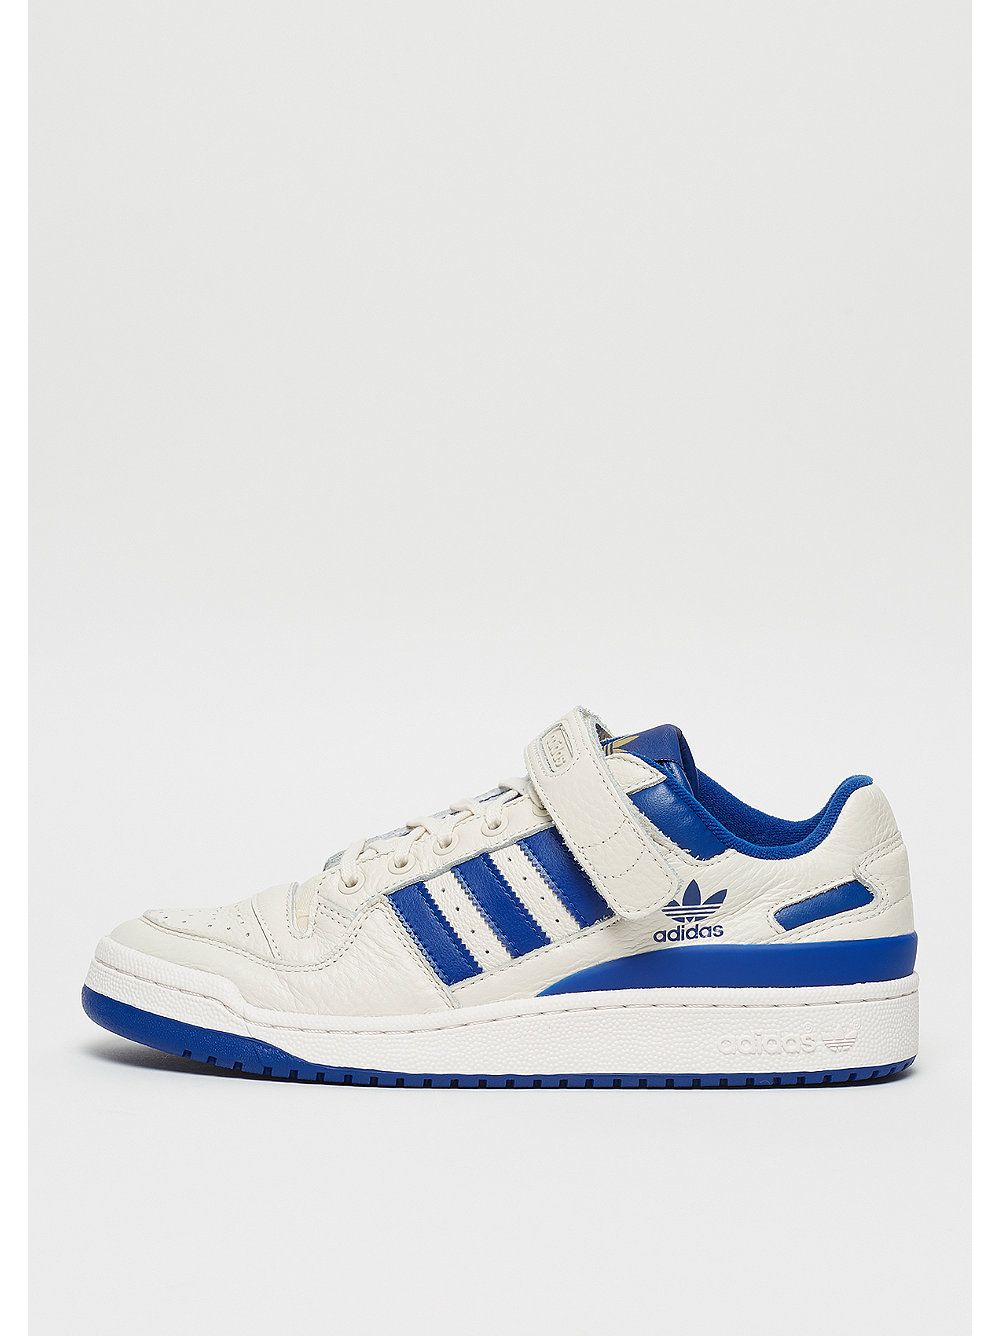 adidas Forum Lo bestellen! chalk Lo white/ collegiate/ royal/ gold bei SNIPES bestellen! 0ceb4fc - rogvitaminer.website